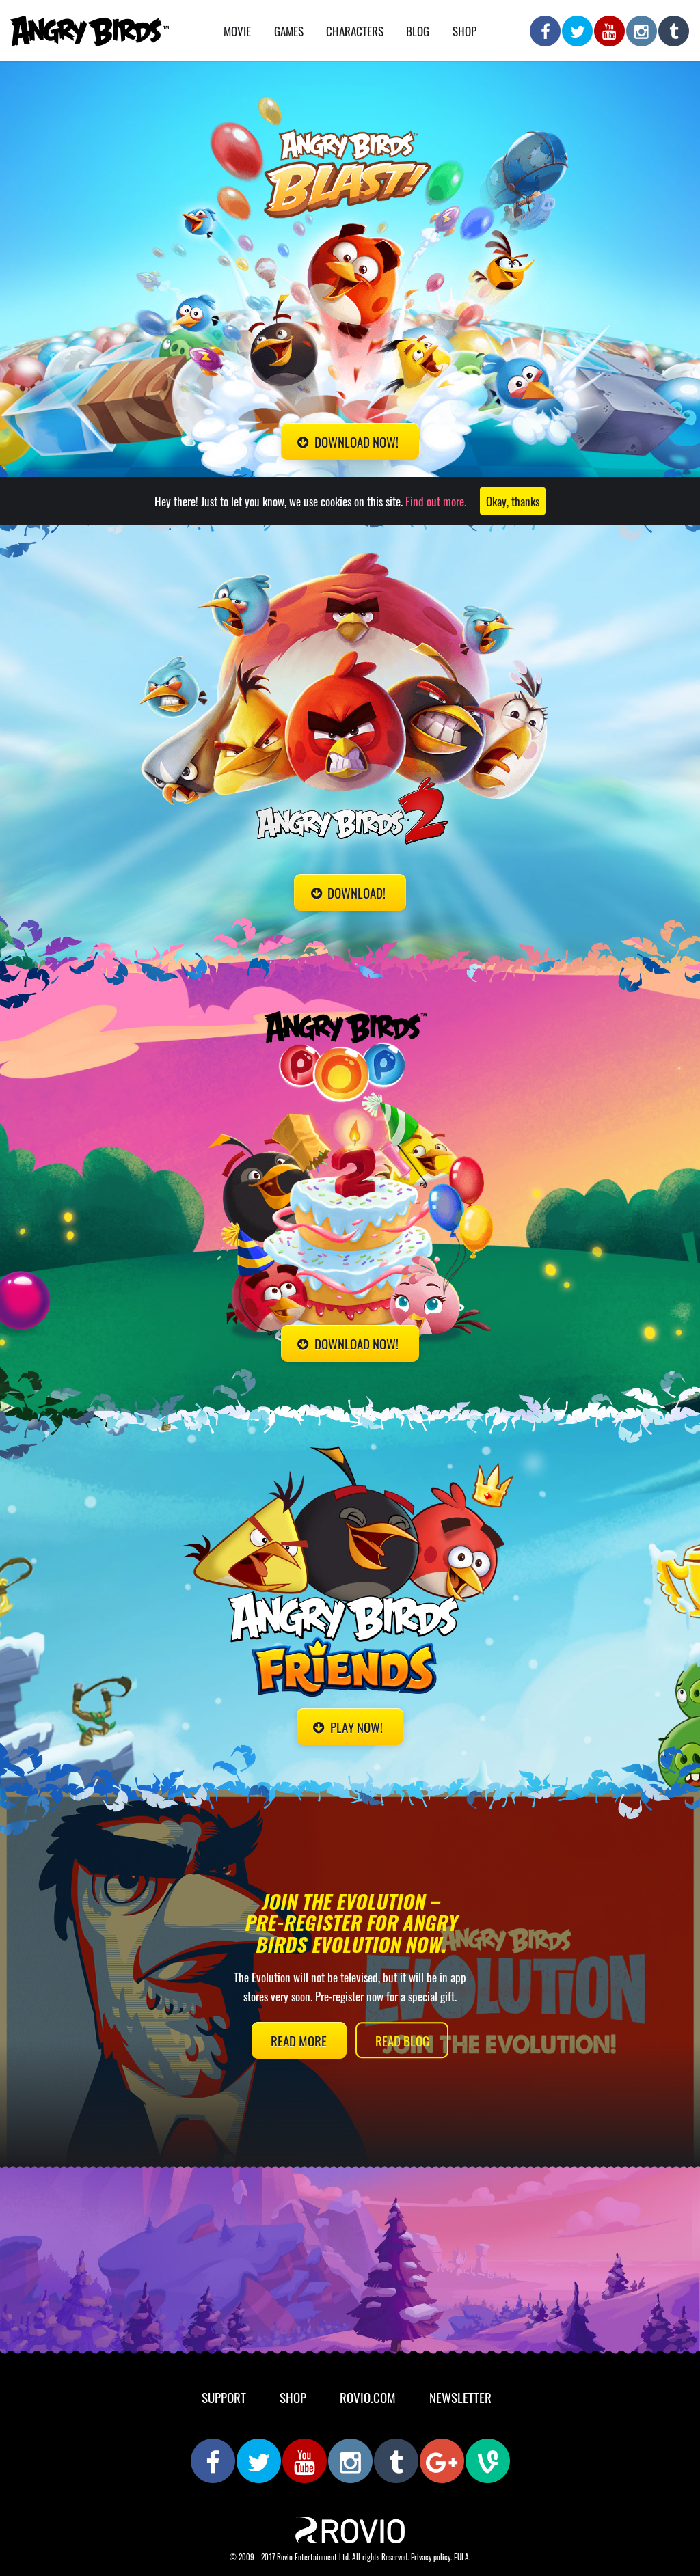 Angrybirds Competitors, Revenue and Employees - Owler